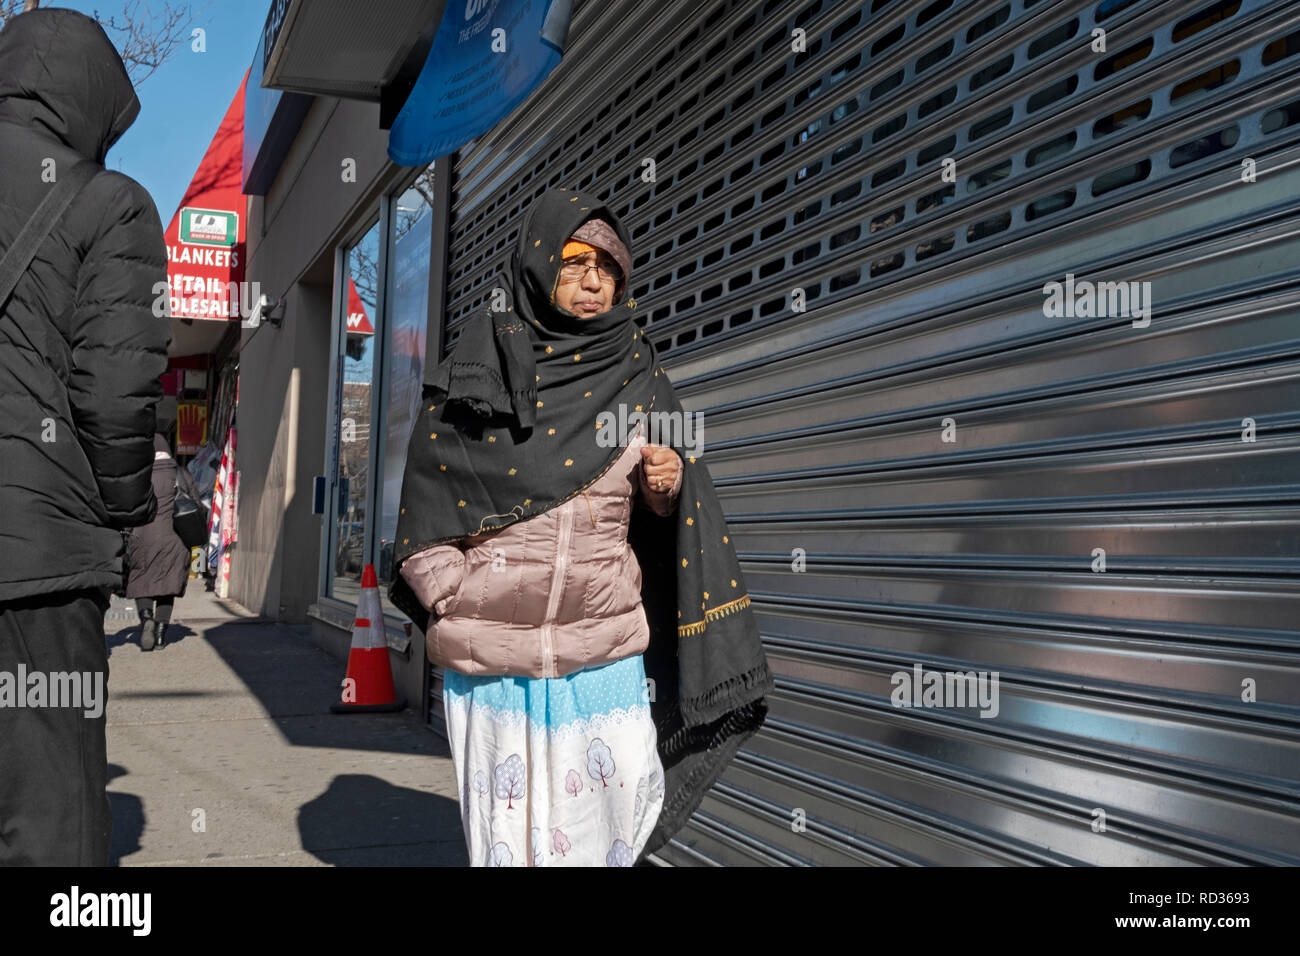 An older Muslim woman wearing a winter coat and niqab walking on 74th Street in Jackson Heights, Queens, New York City. - Stock Image